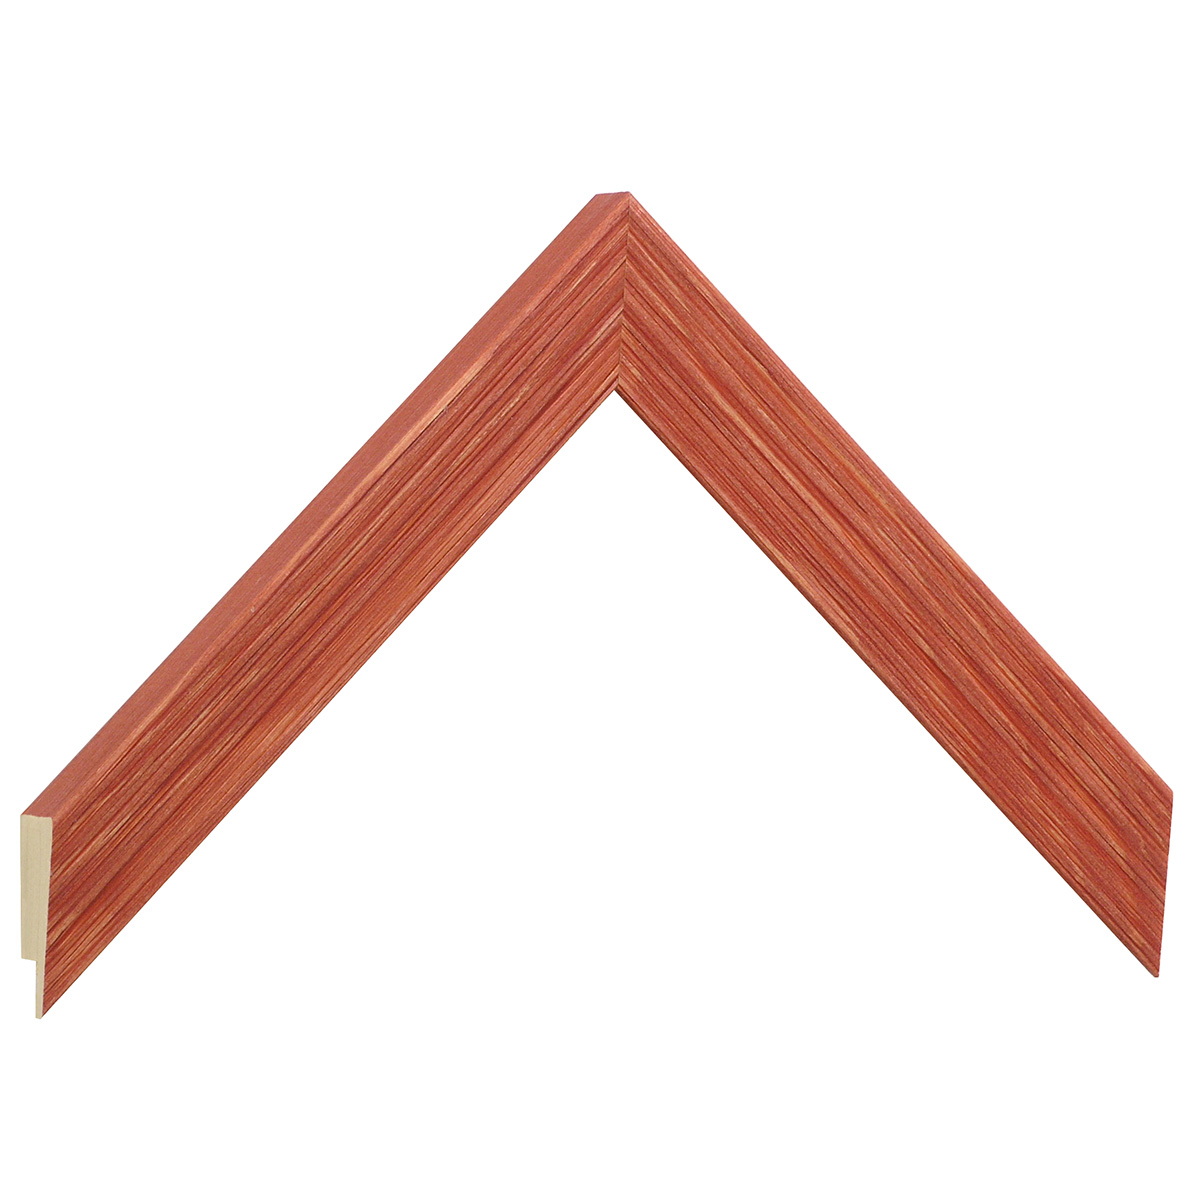 Moulding fir, width 24mm, height 018, striated - red